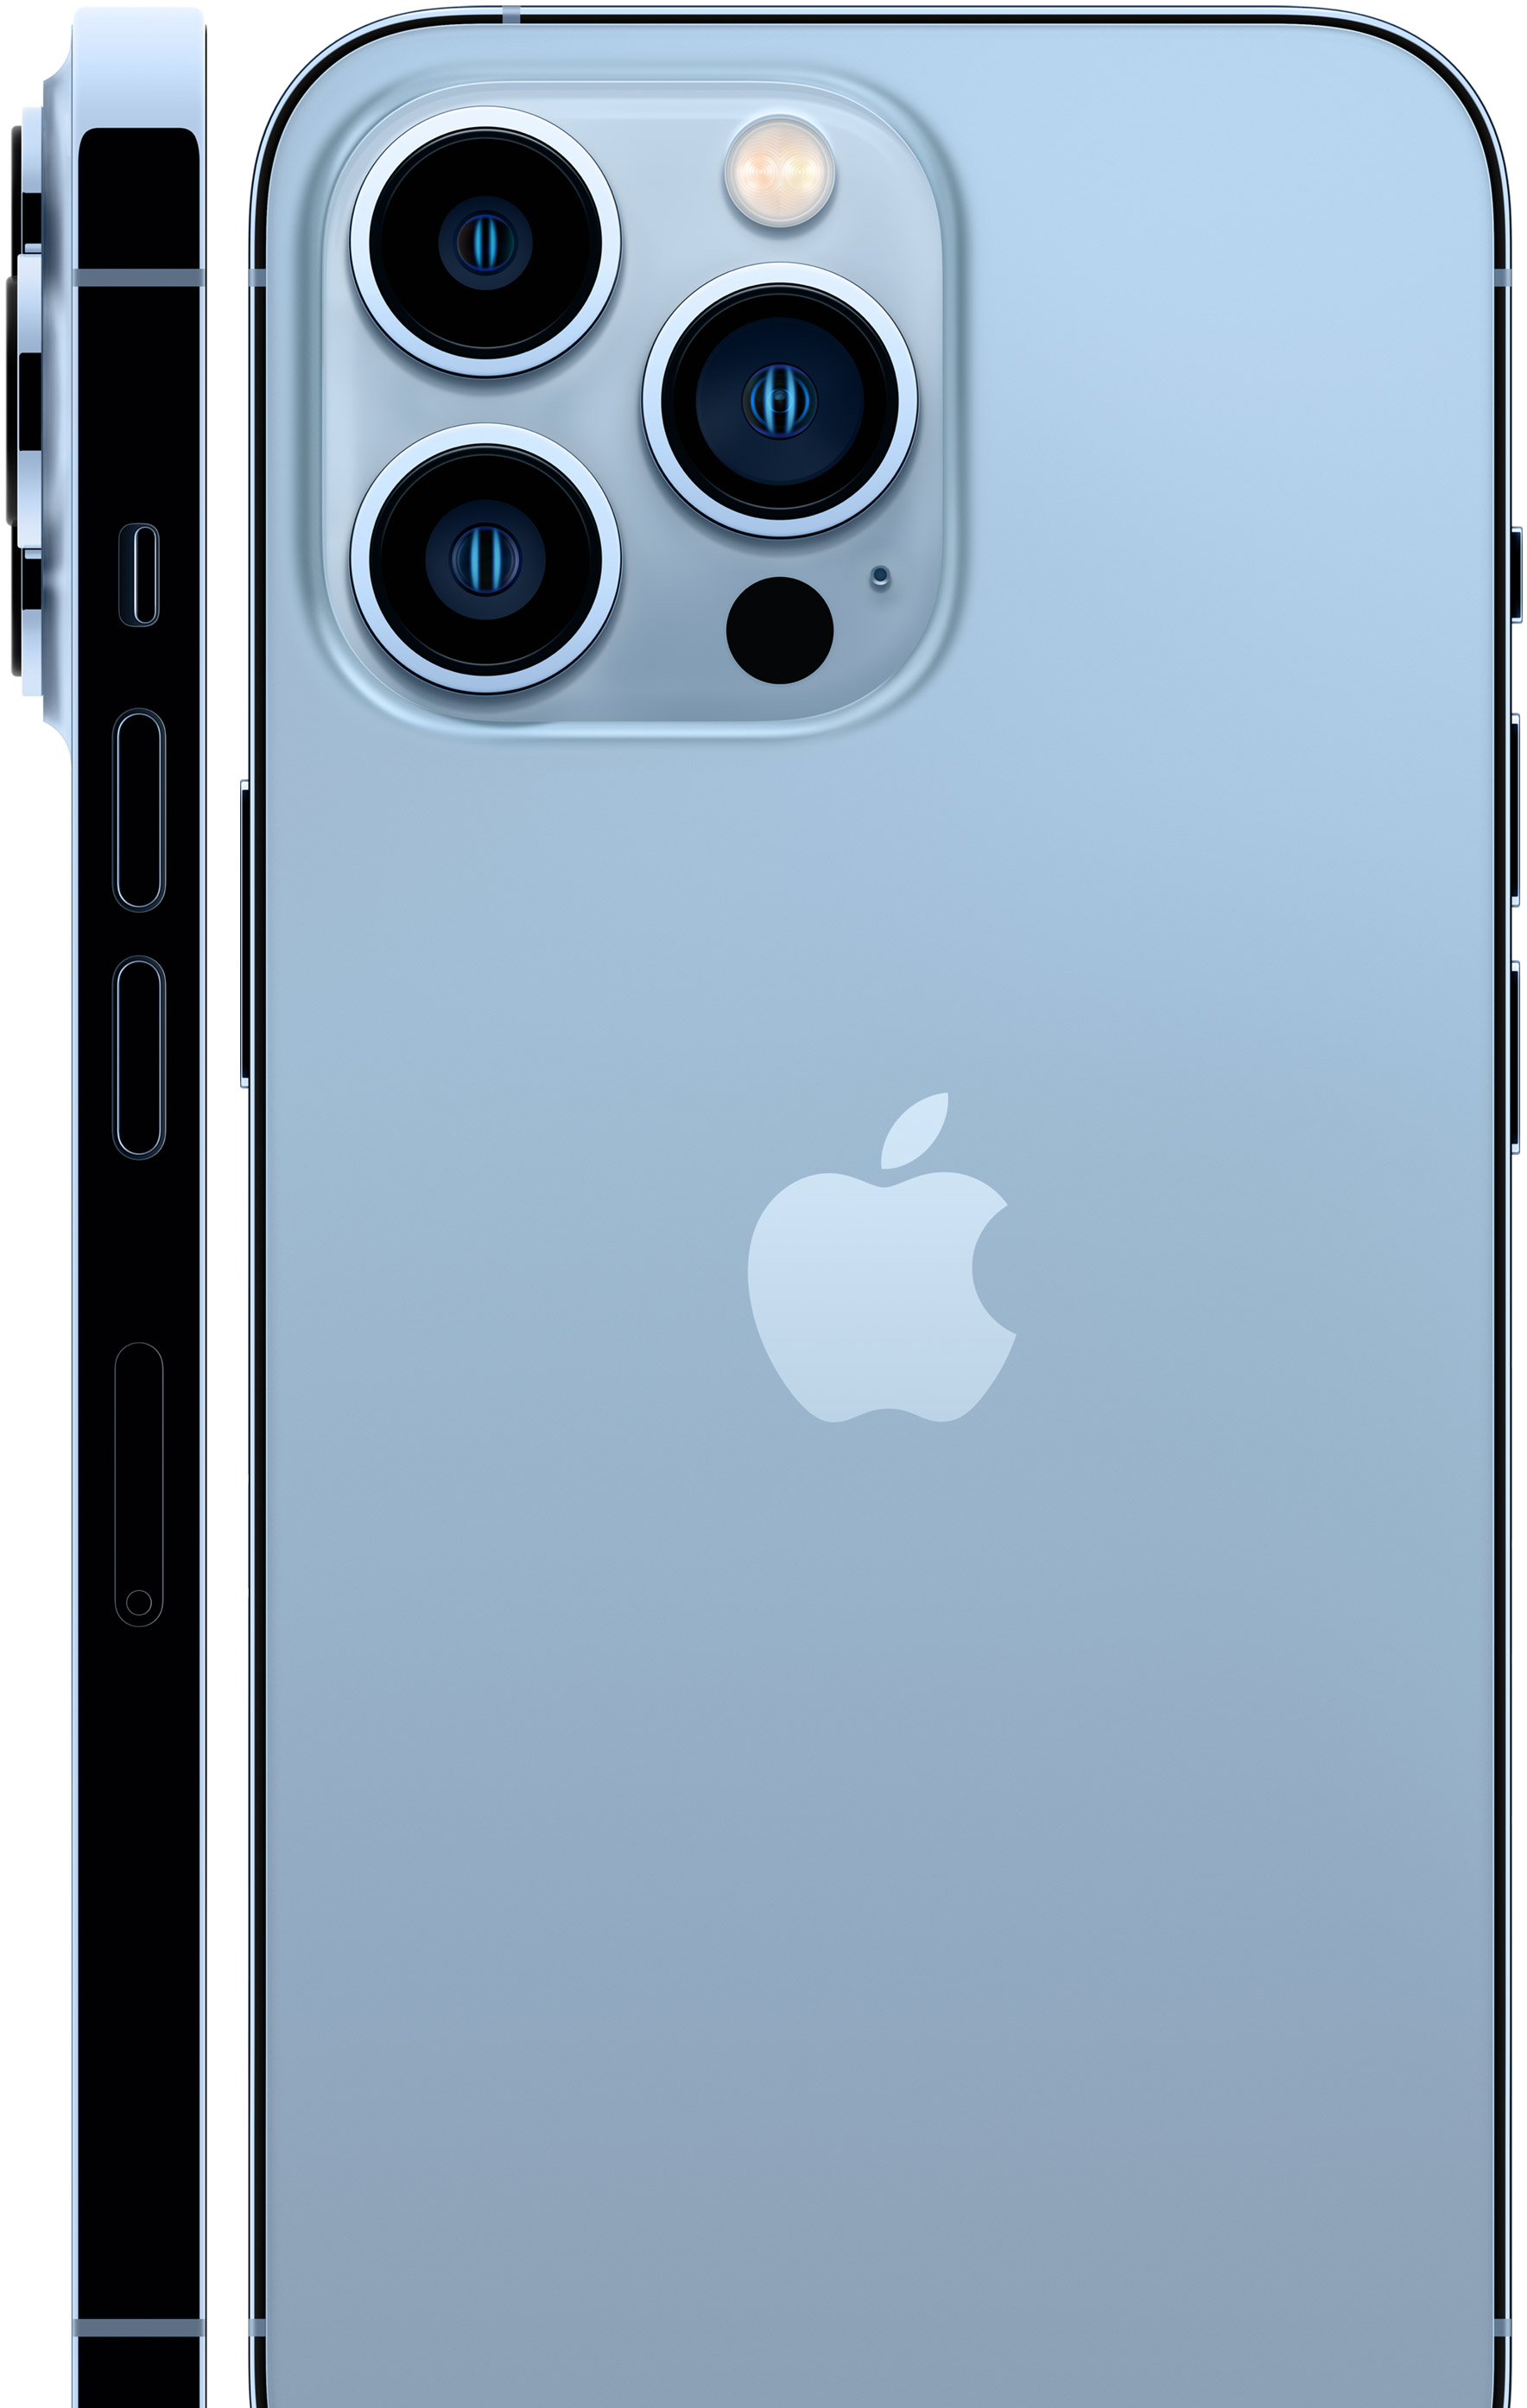 https://www.apple.com/v/iphone-13-pro/a/images/overview/design/water_resistant__gnhxpuloslay_large_2x.jpg